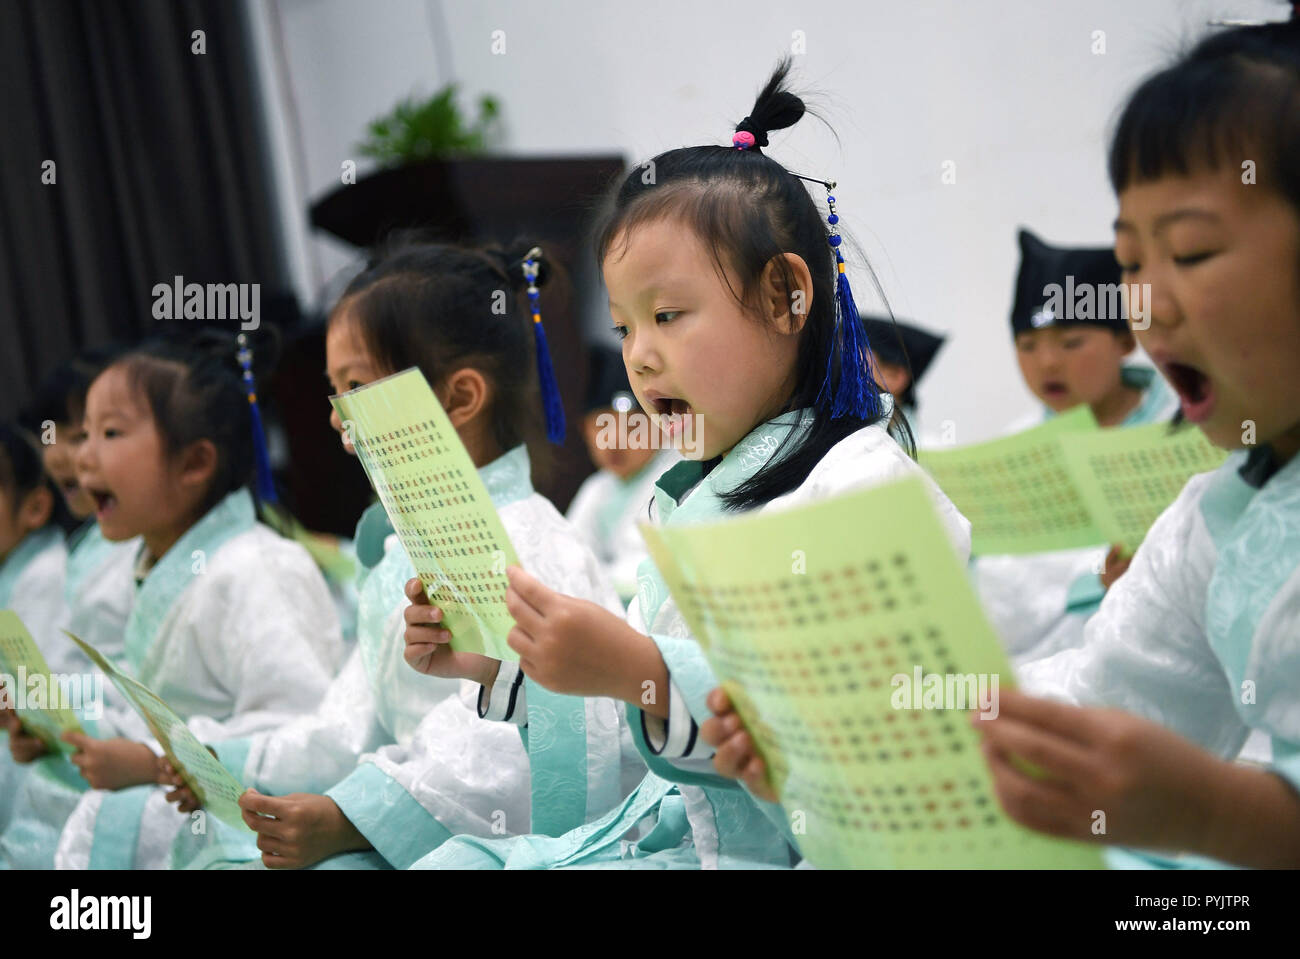 Yingtan, China's Jiangxi Province. 28th Oct, 2018. Students read classics of Chinese literature at a community center in Yingtan City, east China's Jiangxi Province, Oct. 28, 2018. The community offers classes on traditional Chinese culture once a week for children as extracurricular activities. Credit: Wan Xiang/Xinhua/Alamy Live News - Stock Image